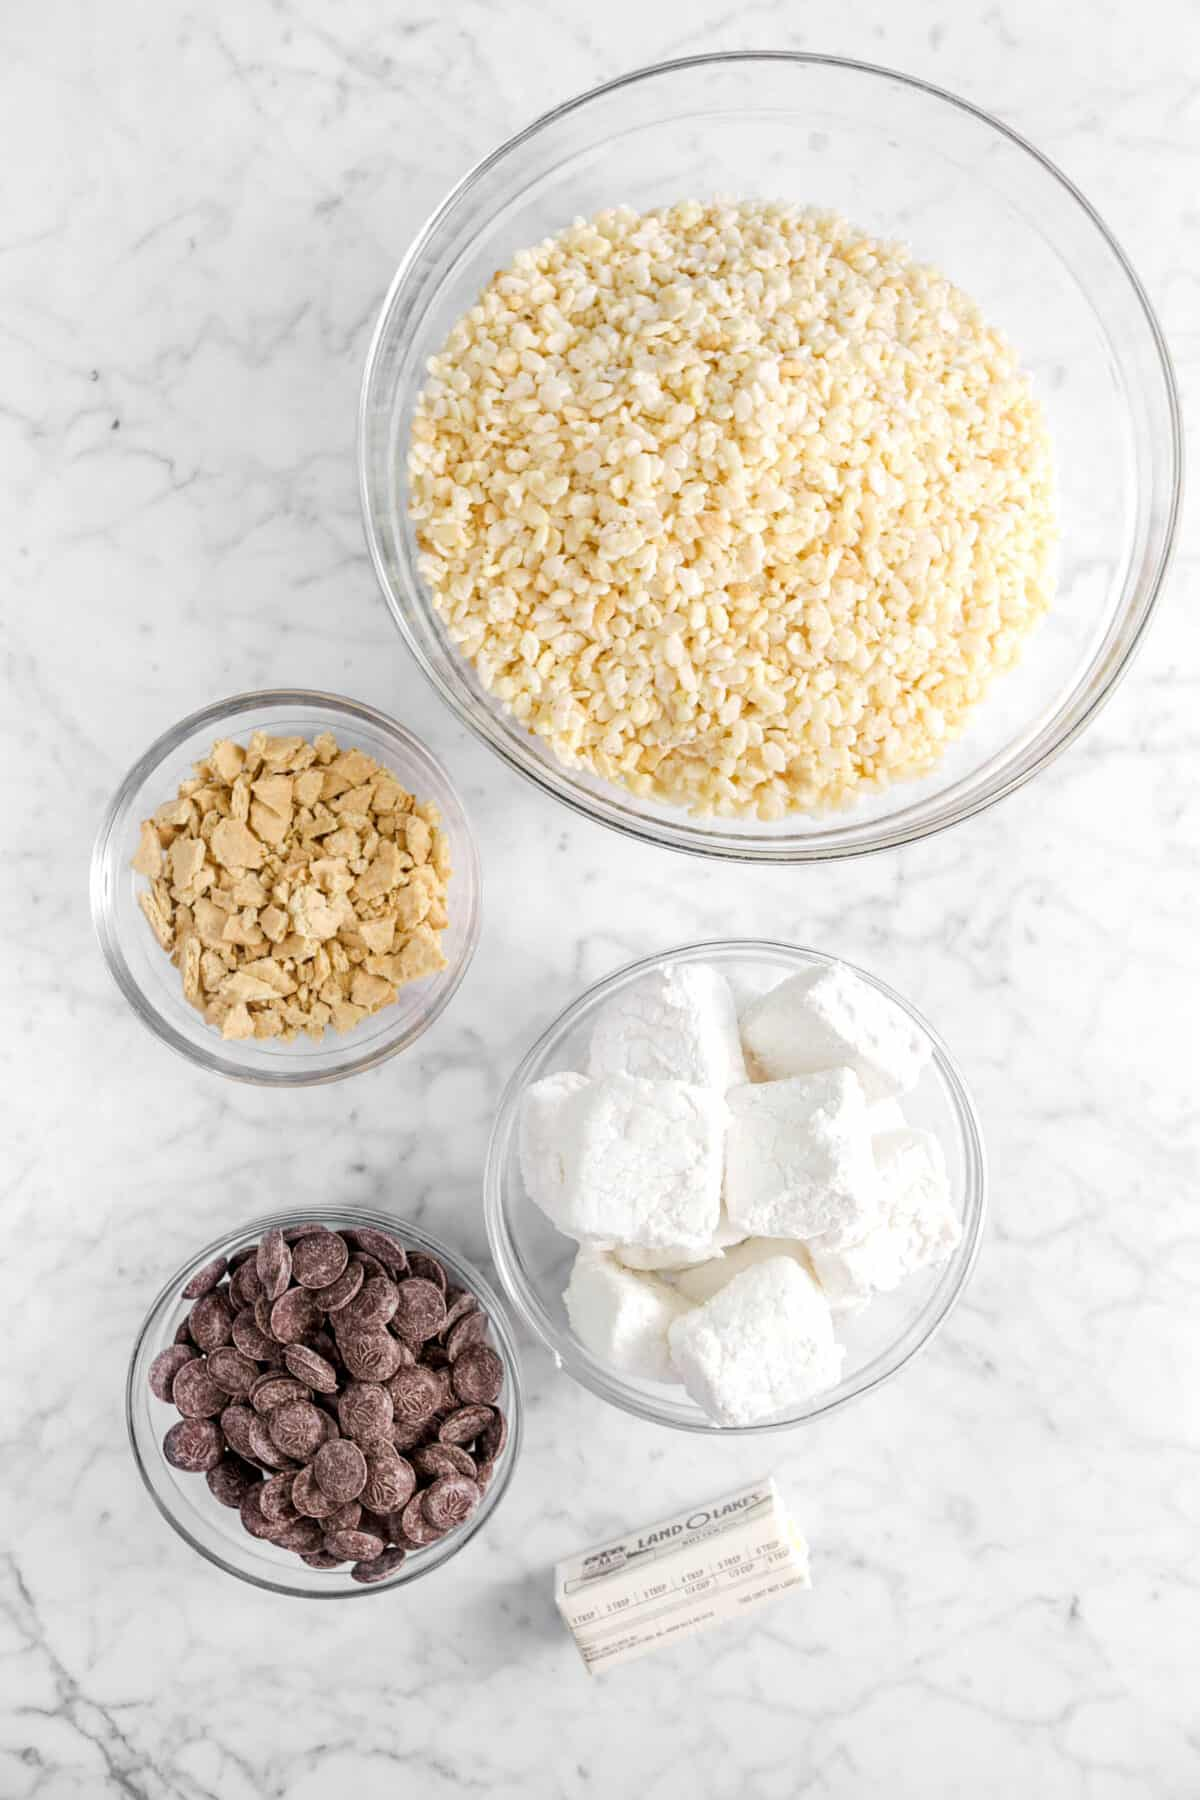 rice krispies, graham crackers, marshmallows, chocolate chips, and butter on marble counter